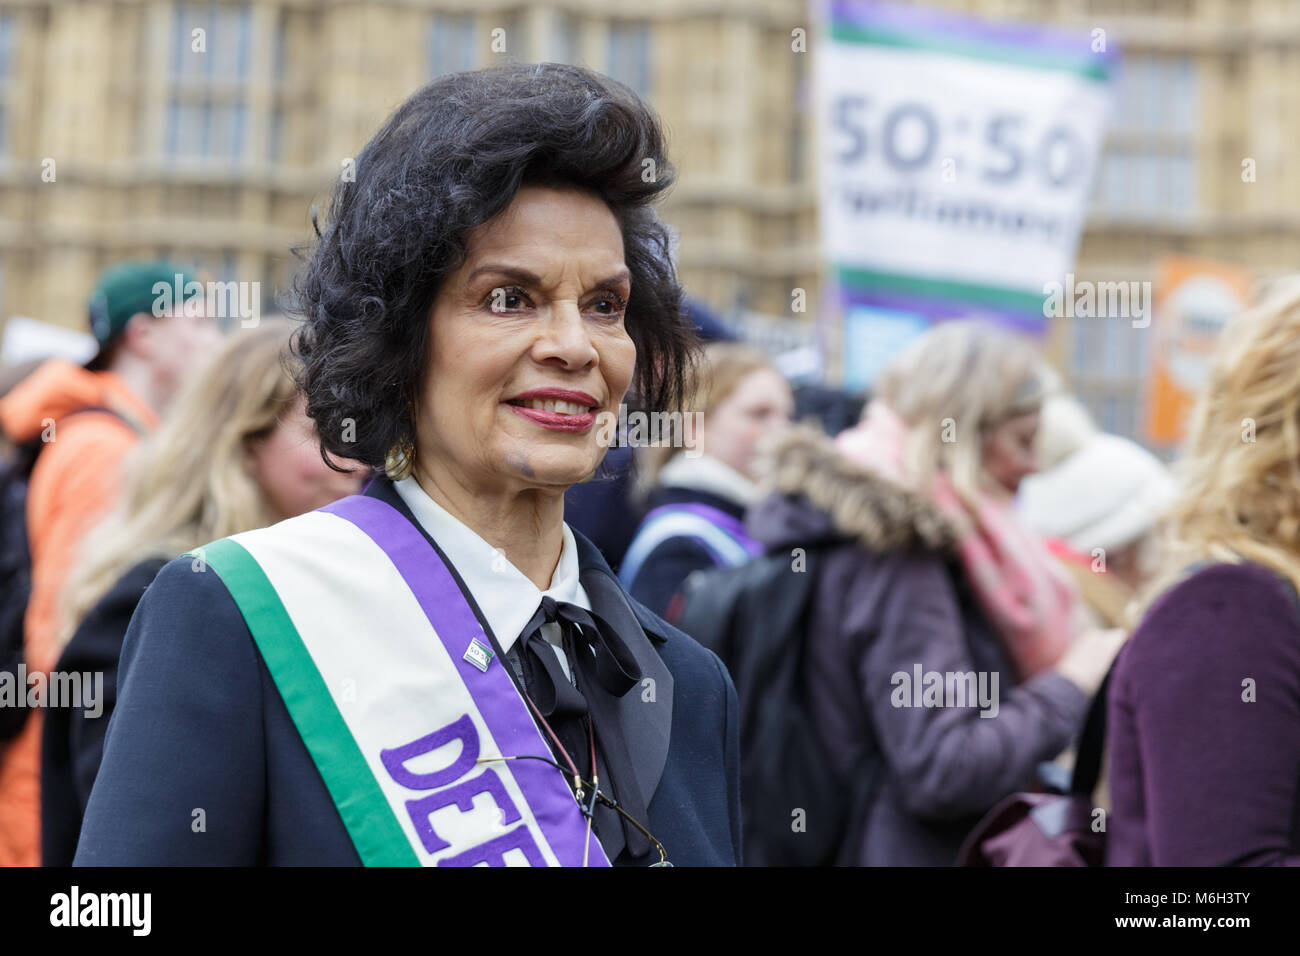 Westminster, London, 4th March 2018. Actress and activist Bianca Jagger supports the march and lends her voice. - Stock Image